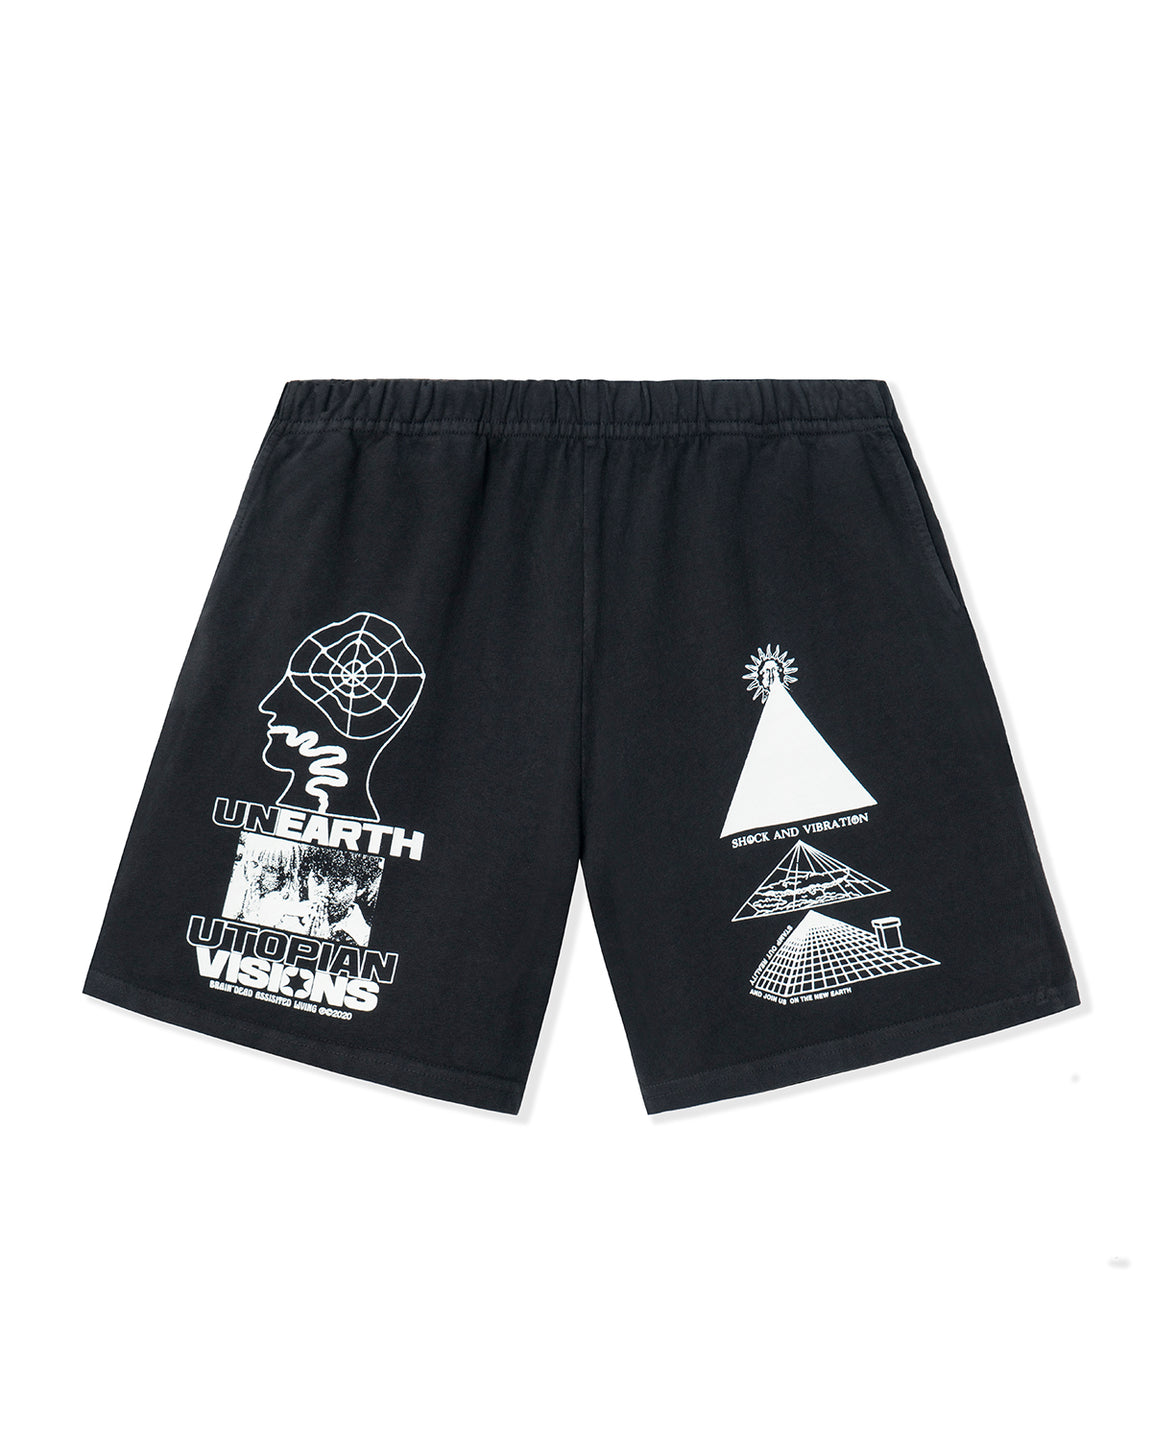 Unearth Utopian Visions Jersey Short - Black